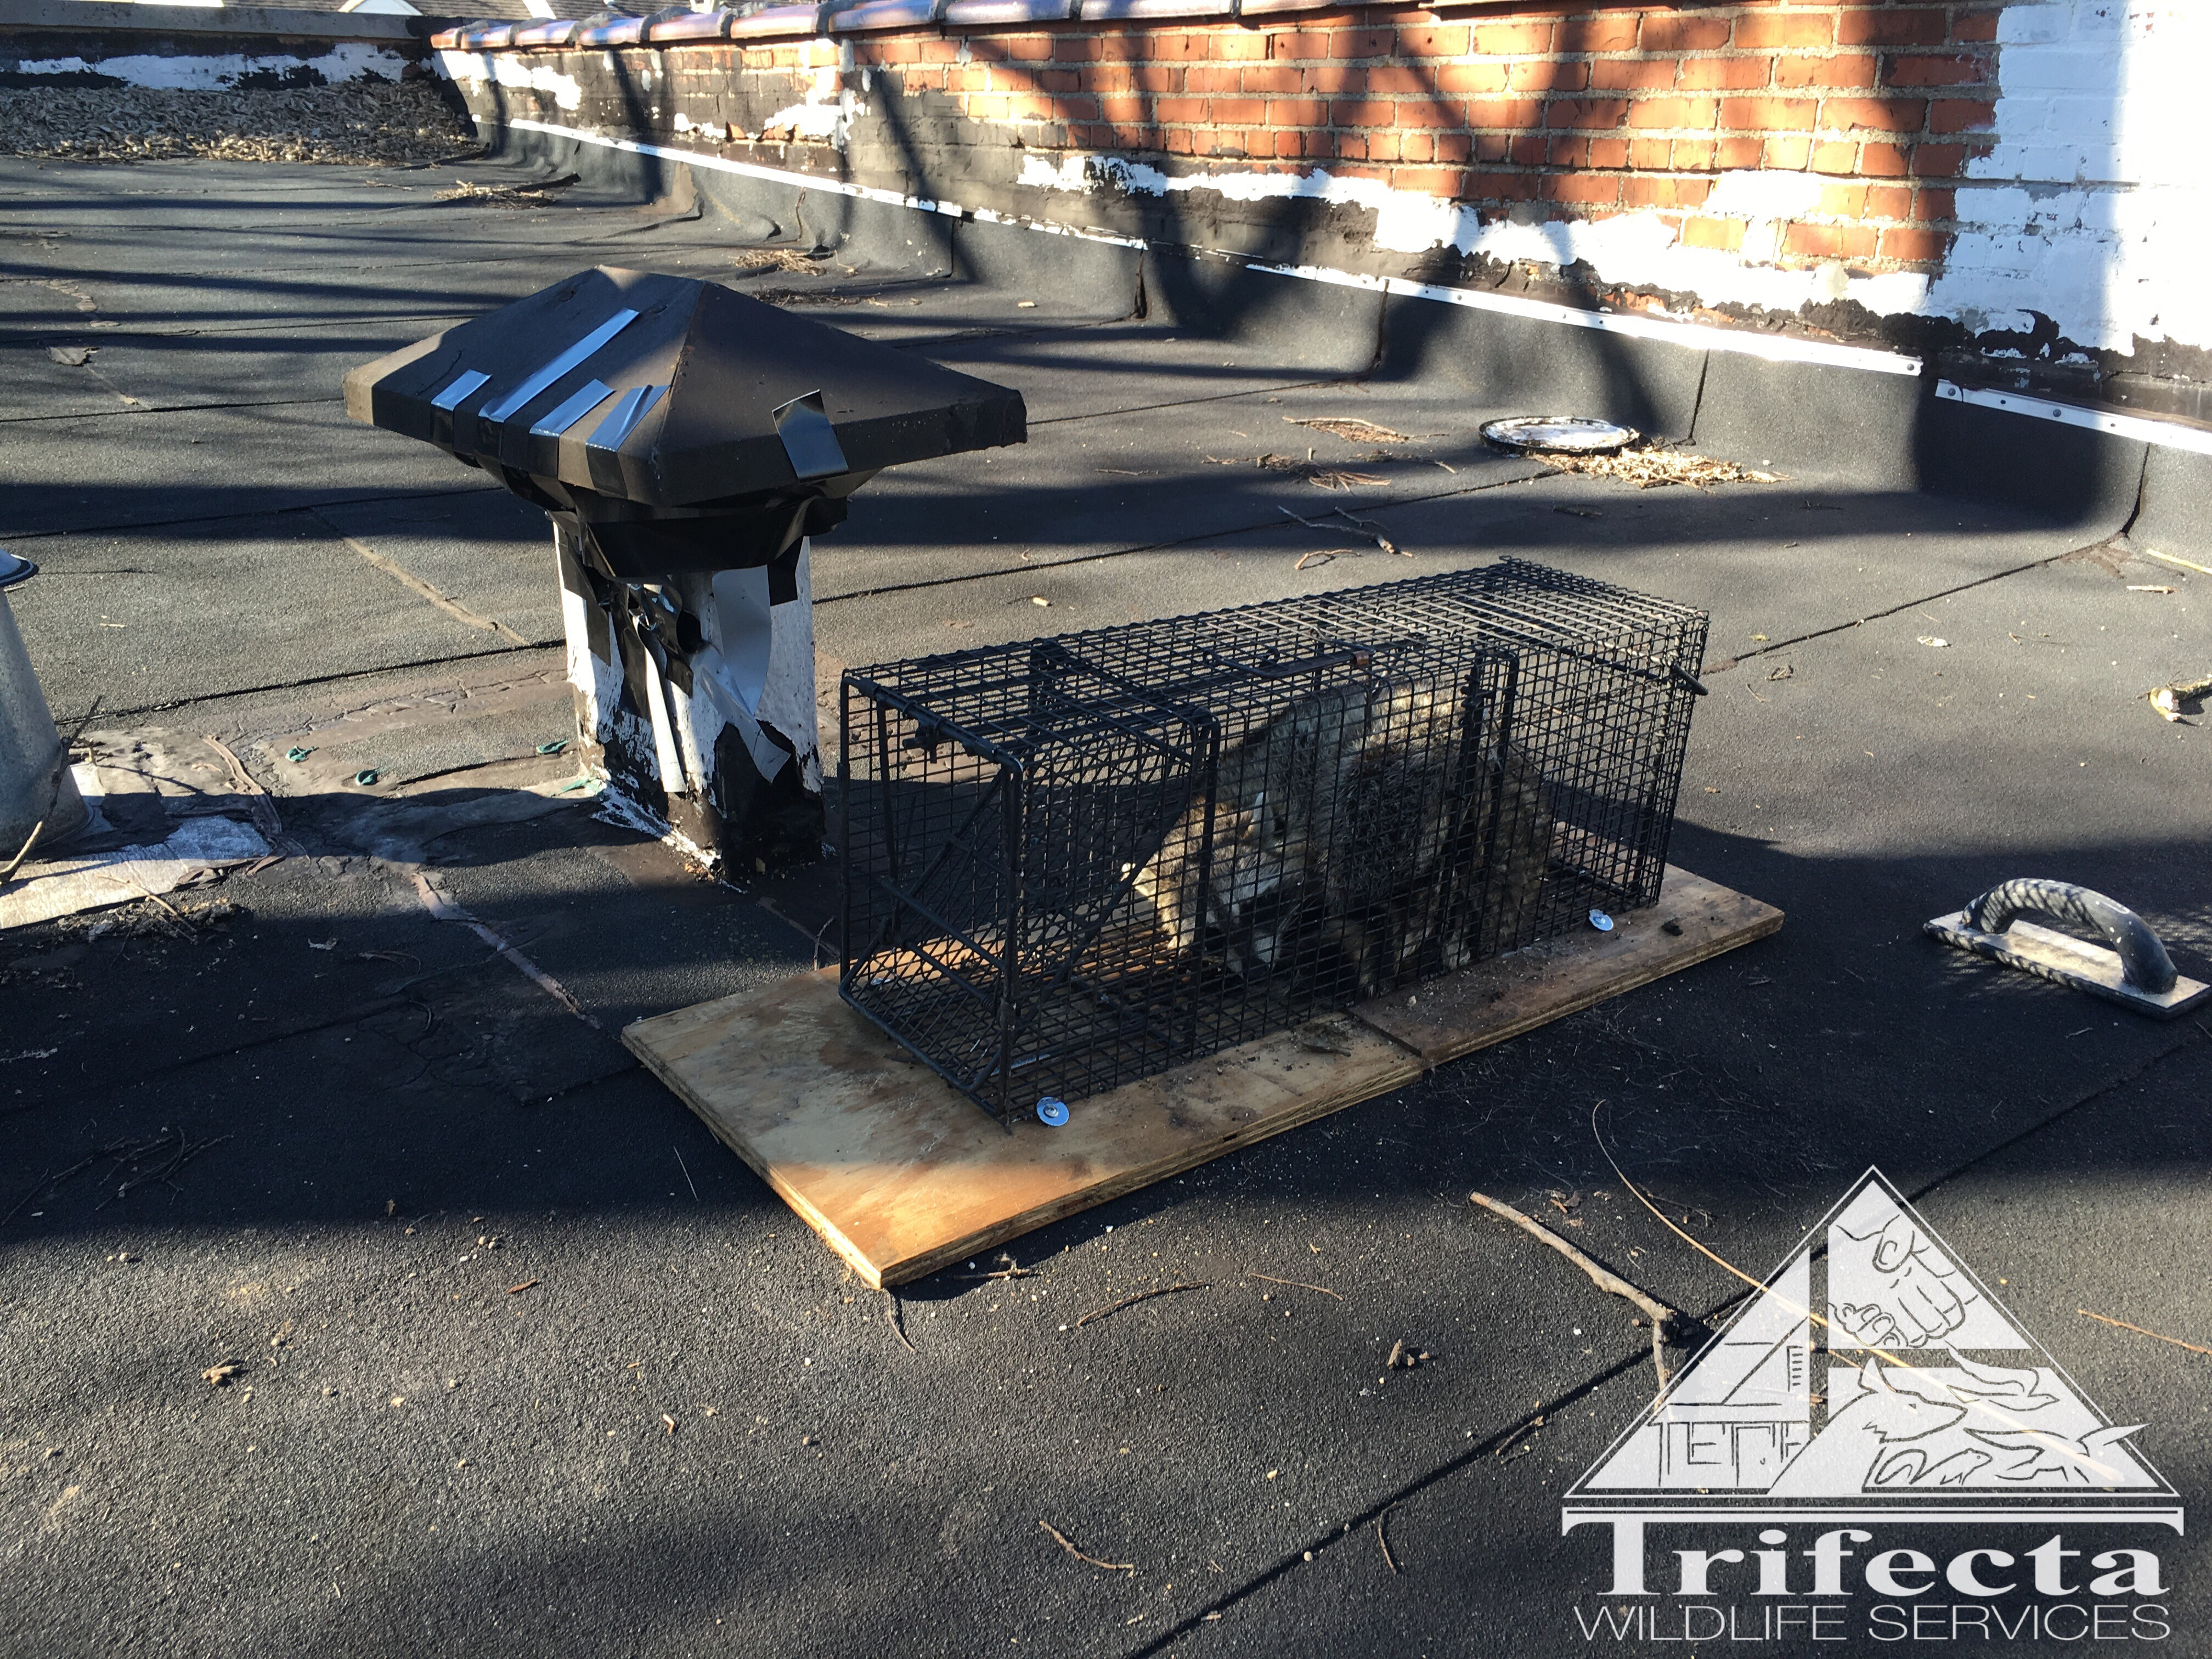 Captured raccoon and vent stack he was entering